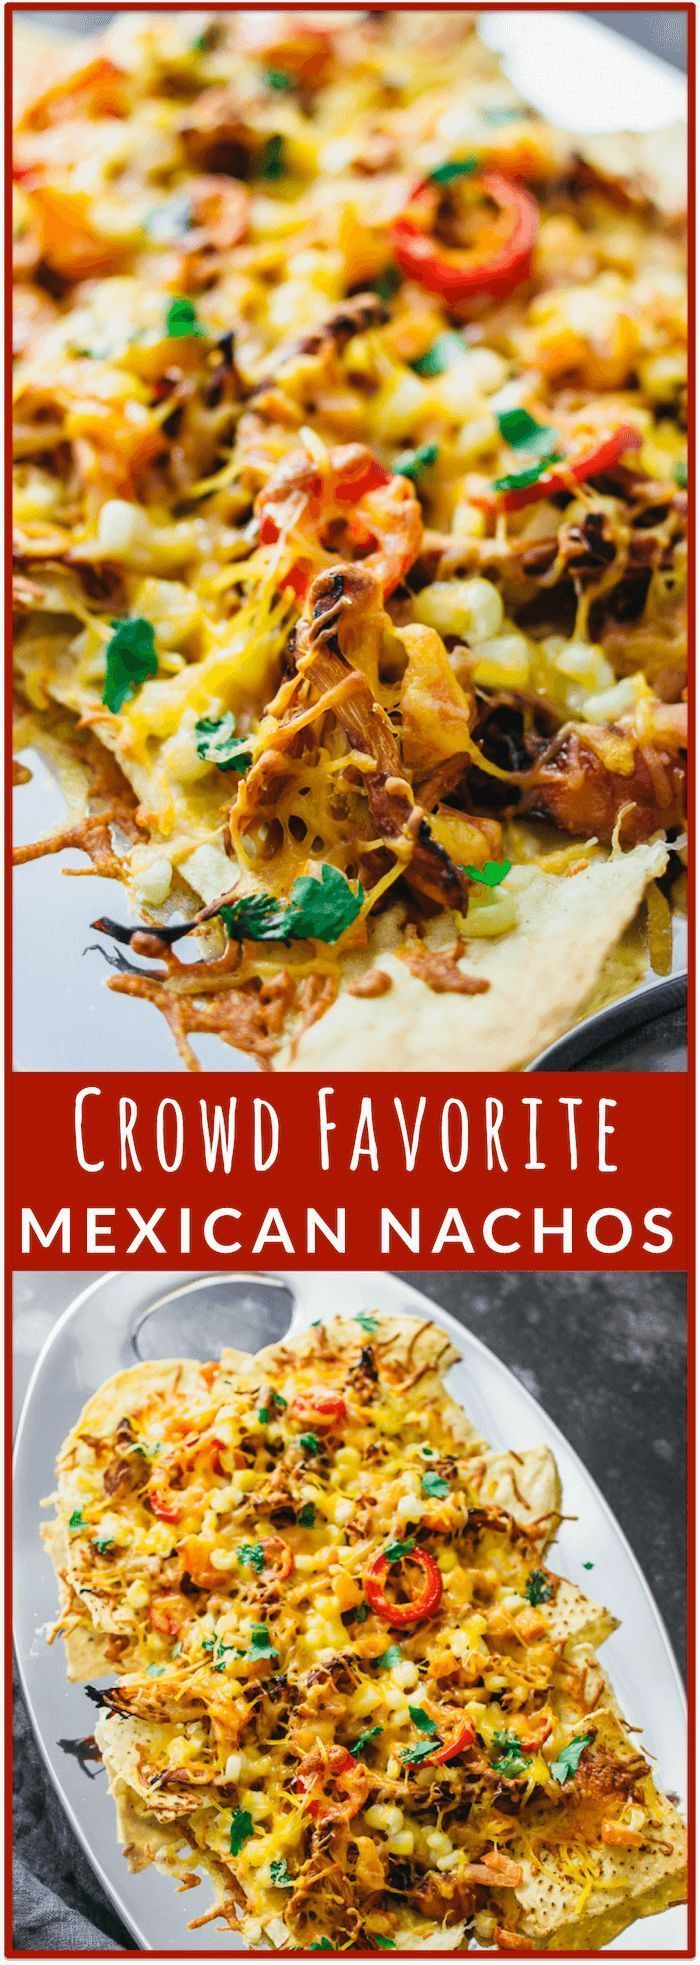 Loaded Mexican nachos with chicken - These LOADED Mexican nachos are super savory and hearty with shredded chicken, diced tomatoes, a splash of corn, sliced jalapeo, and plenty of shredded cheese. This is the perfect recipe for making baked nachos that a